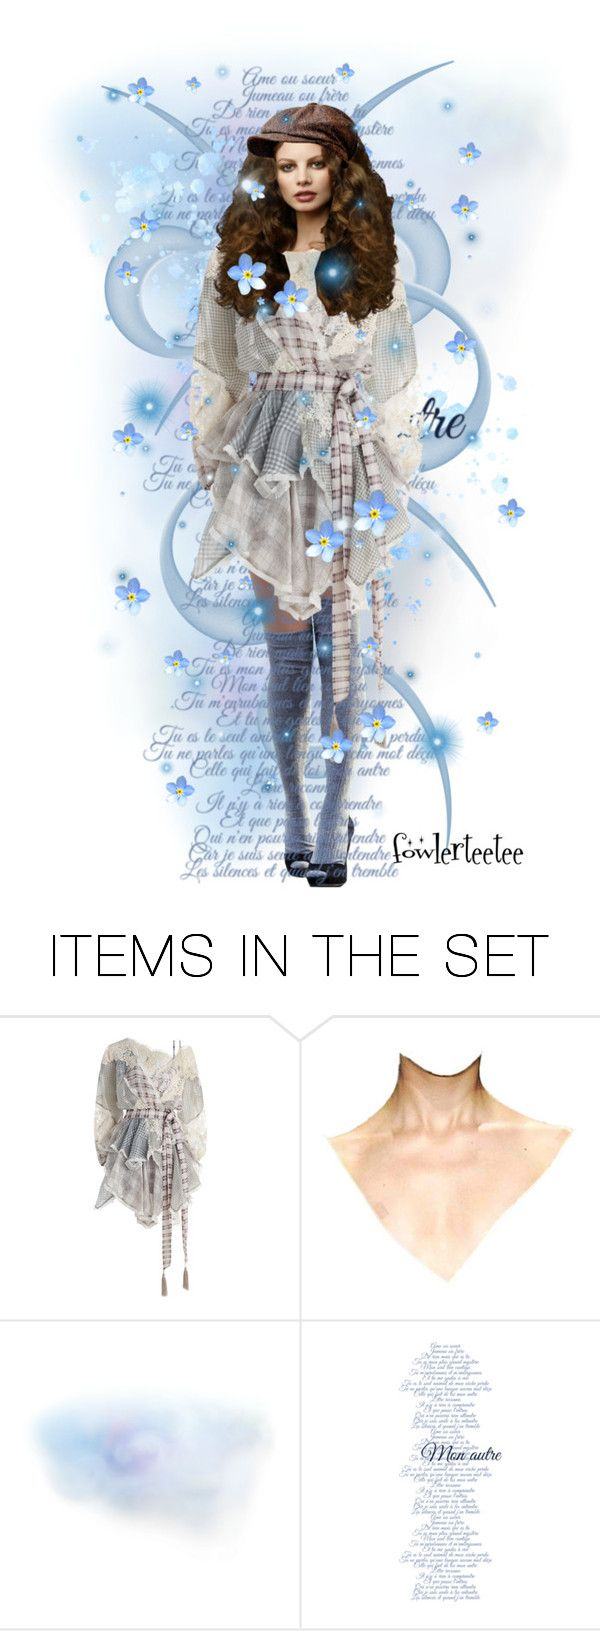 """Ζήστε το Πάθος"" by fowlerteetee ❤ liked on Polyvore featuring art"